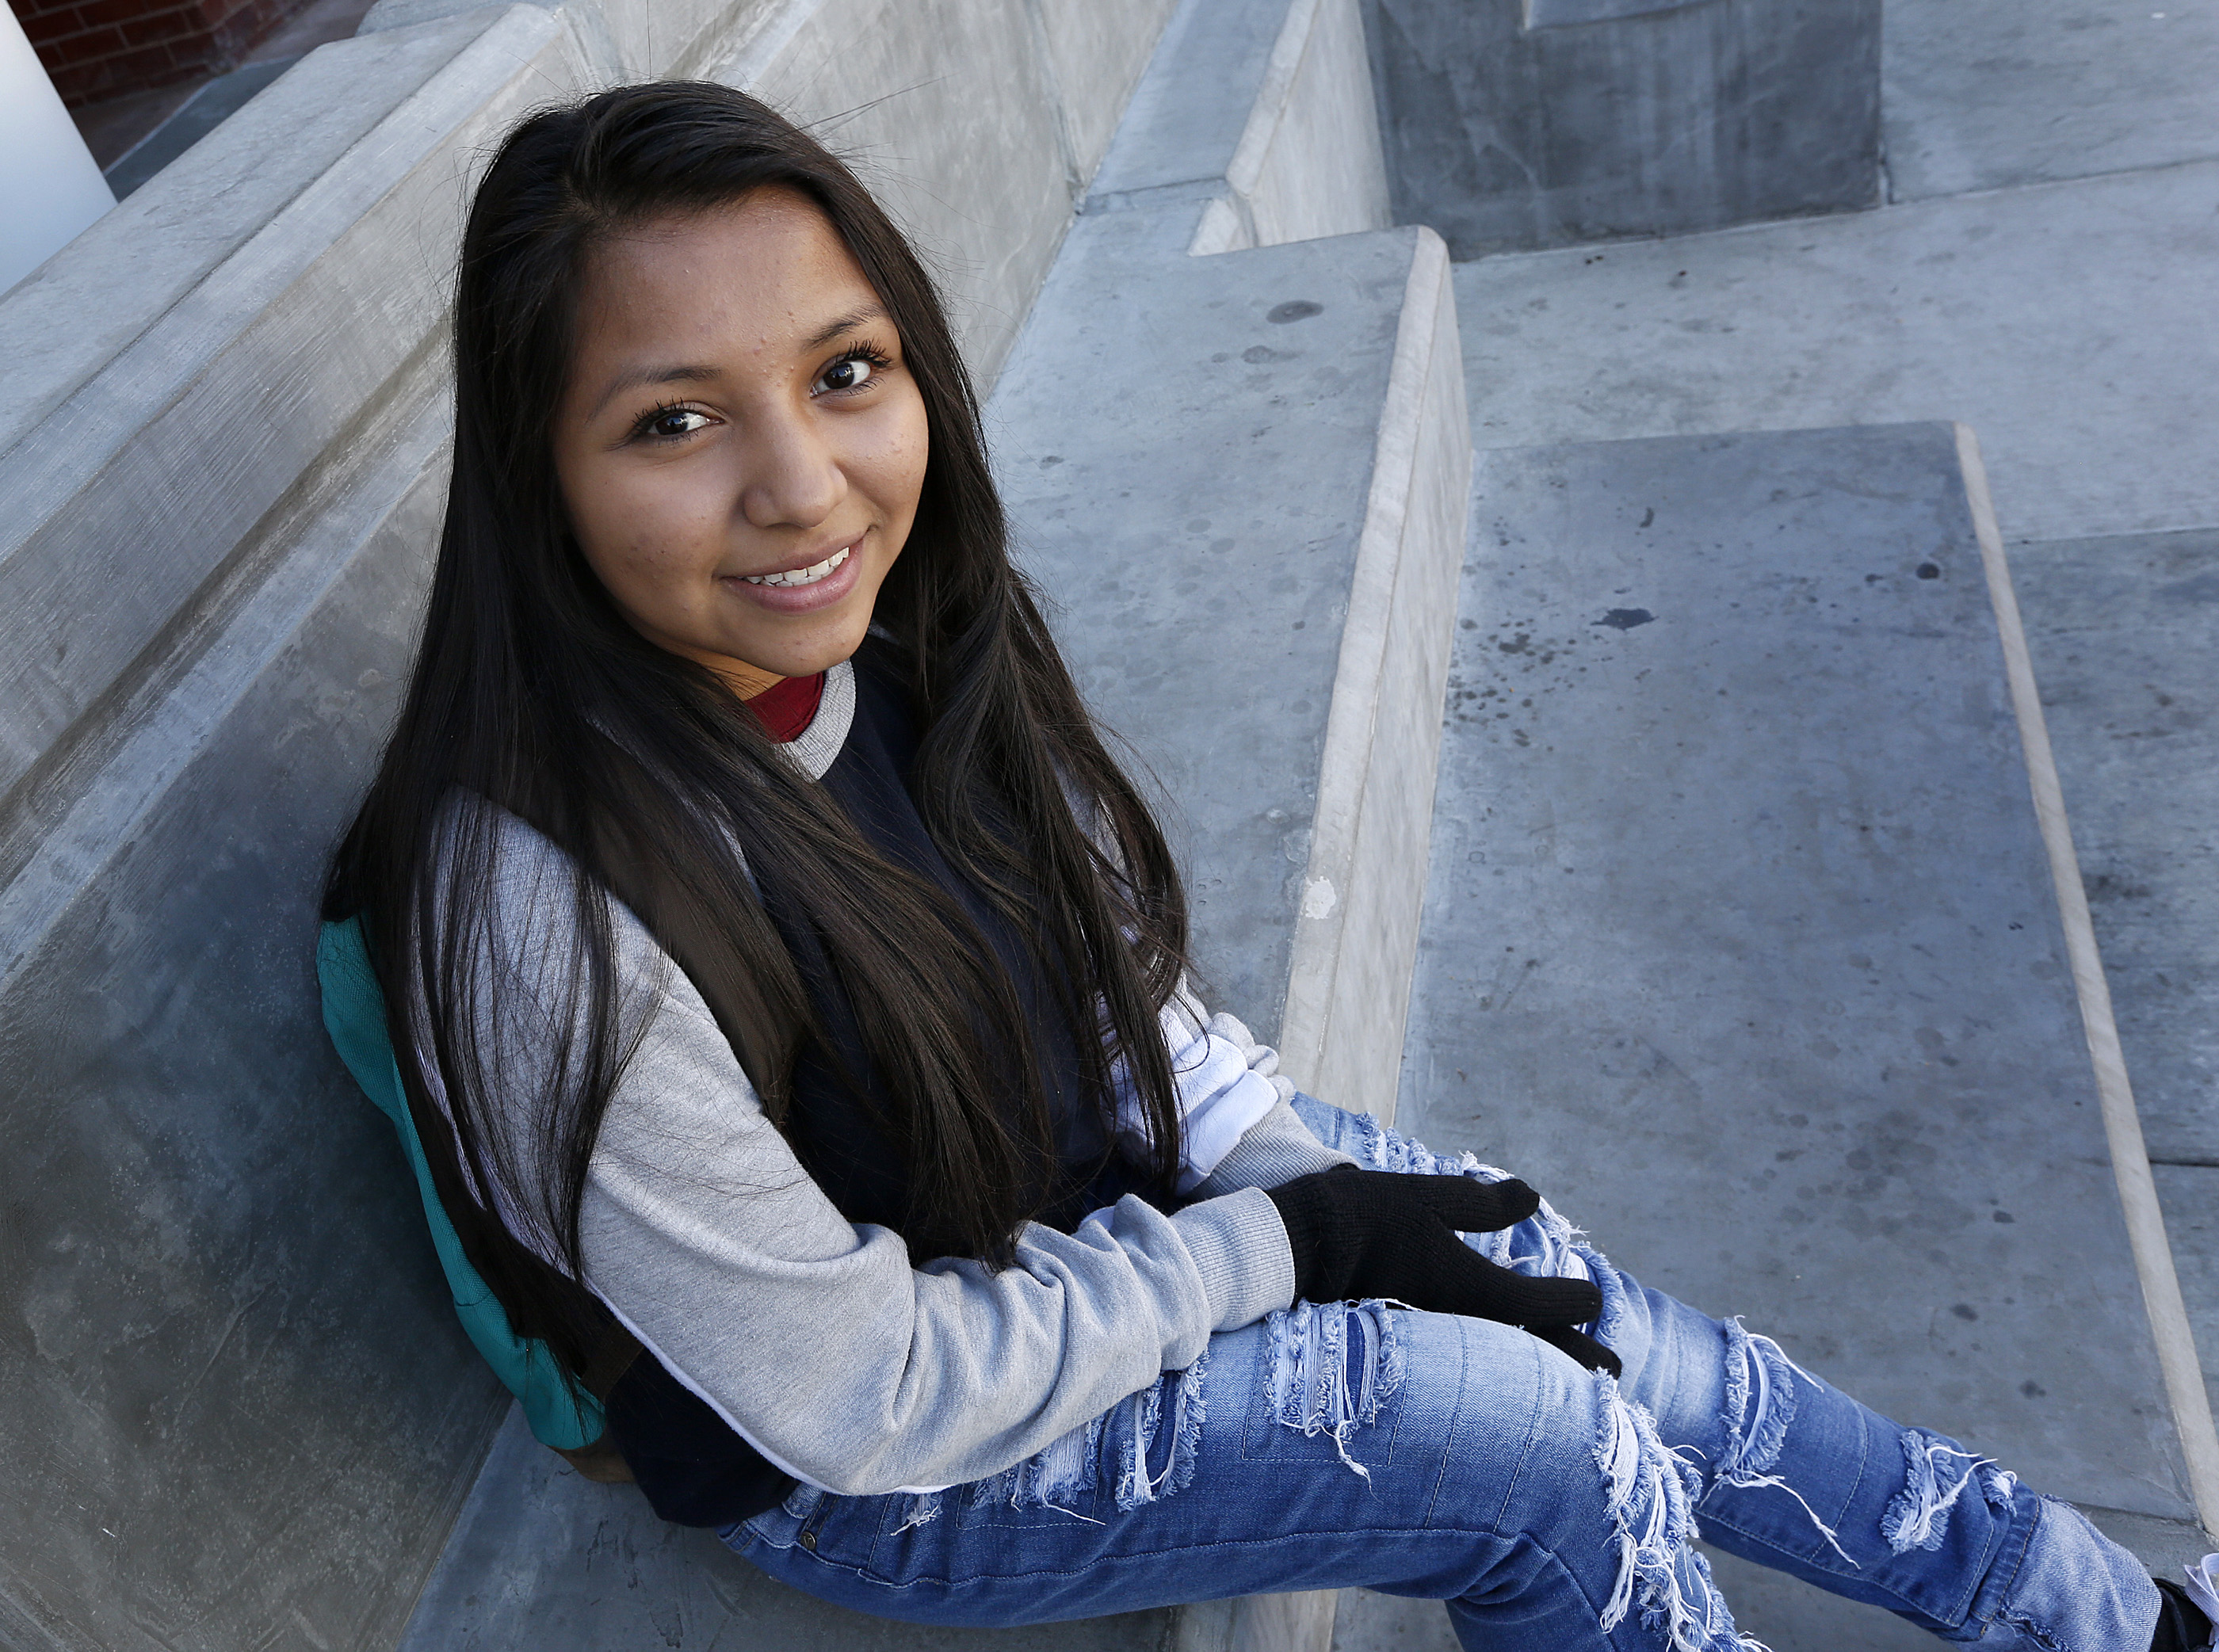 12/02/16/LOS ANGELES/ 16 year-old Yency Rosales, from El Salvador, during the Central American Youth Leadership Conference held at California State University Los Angeles. (Photo by Aurelia Ventura/La Opinion)